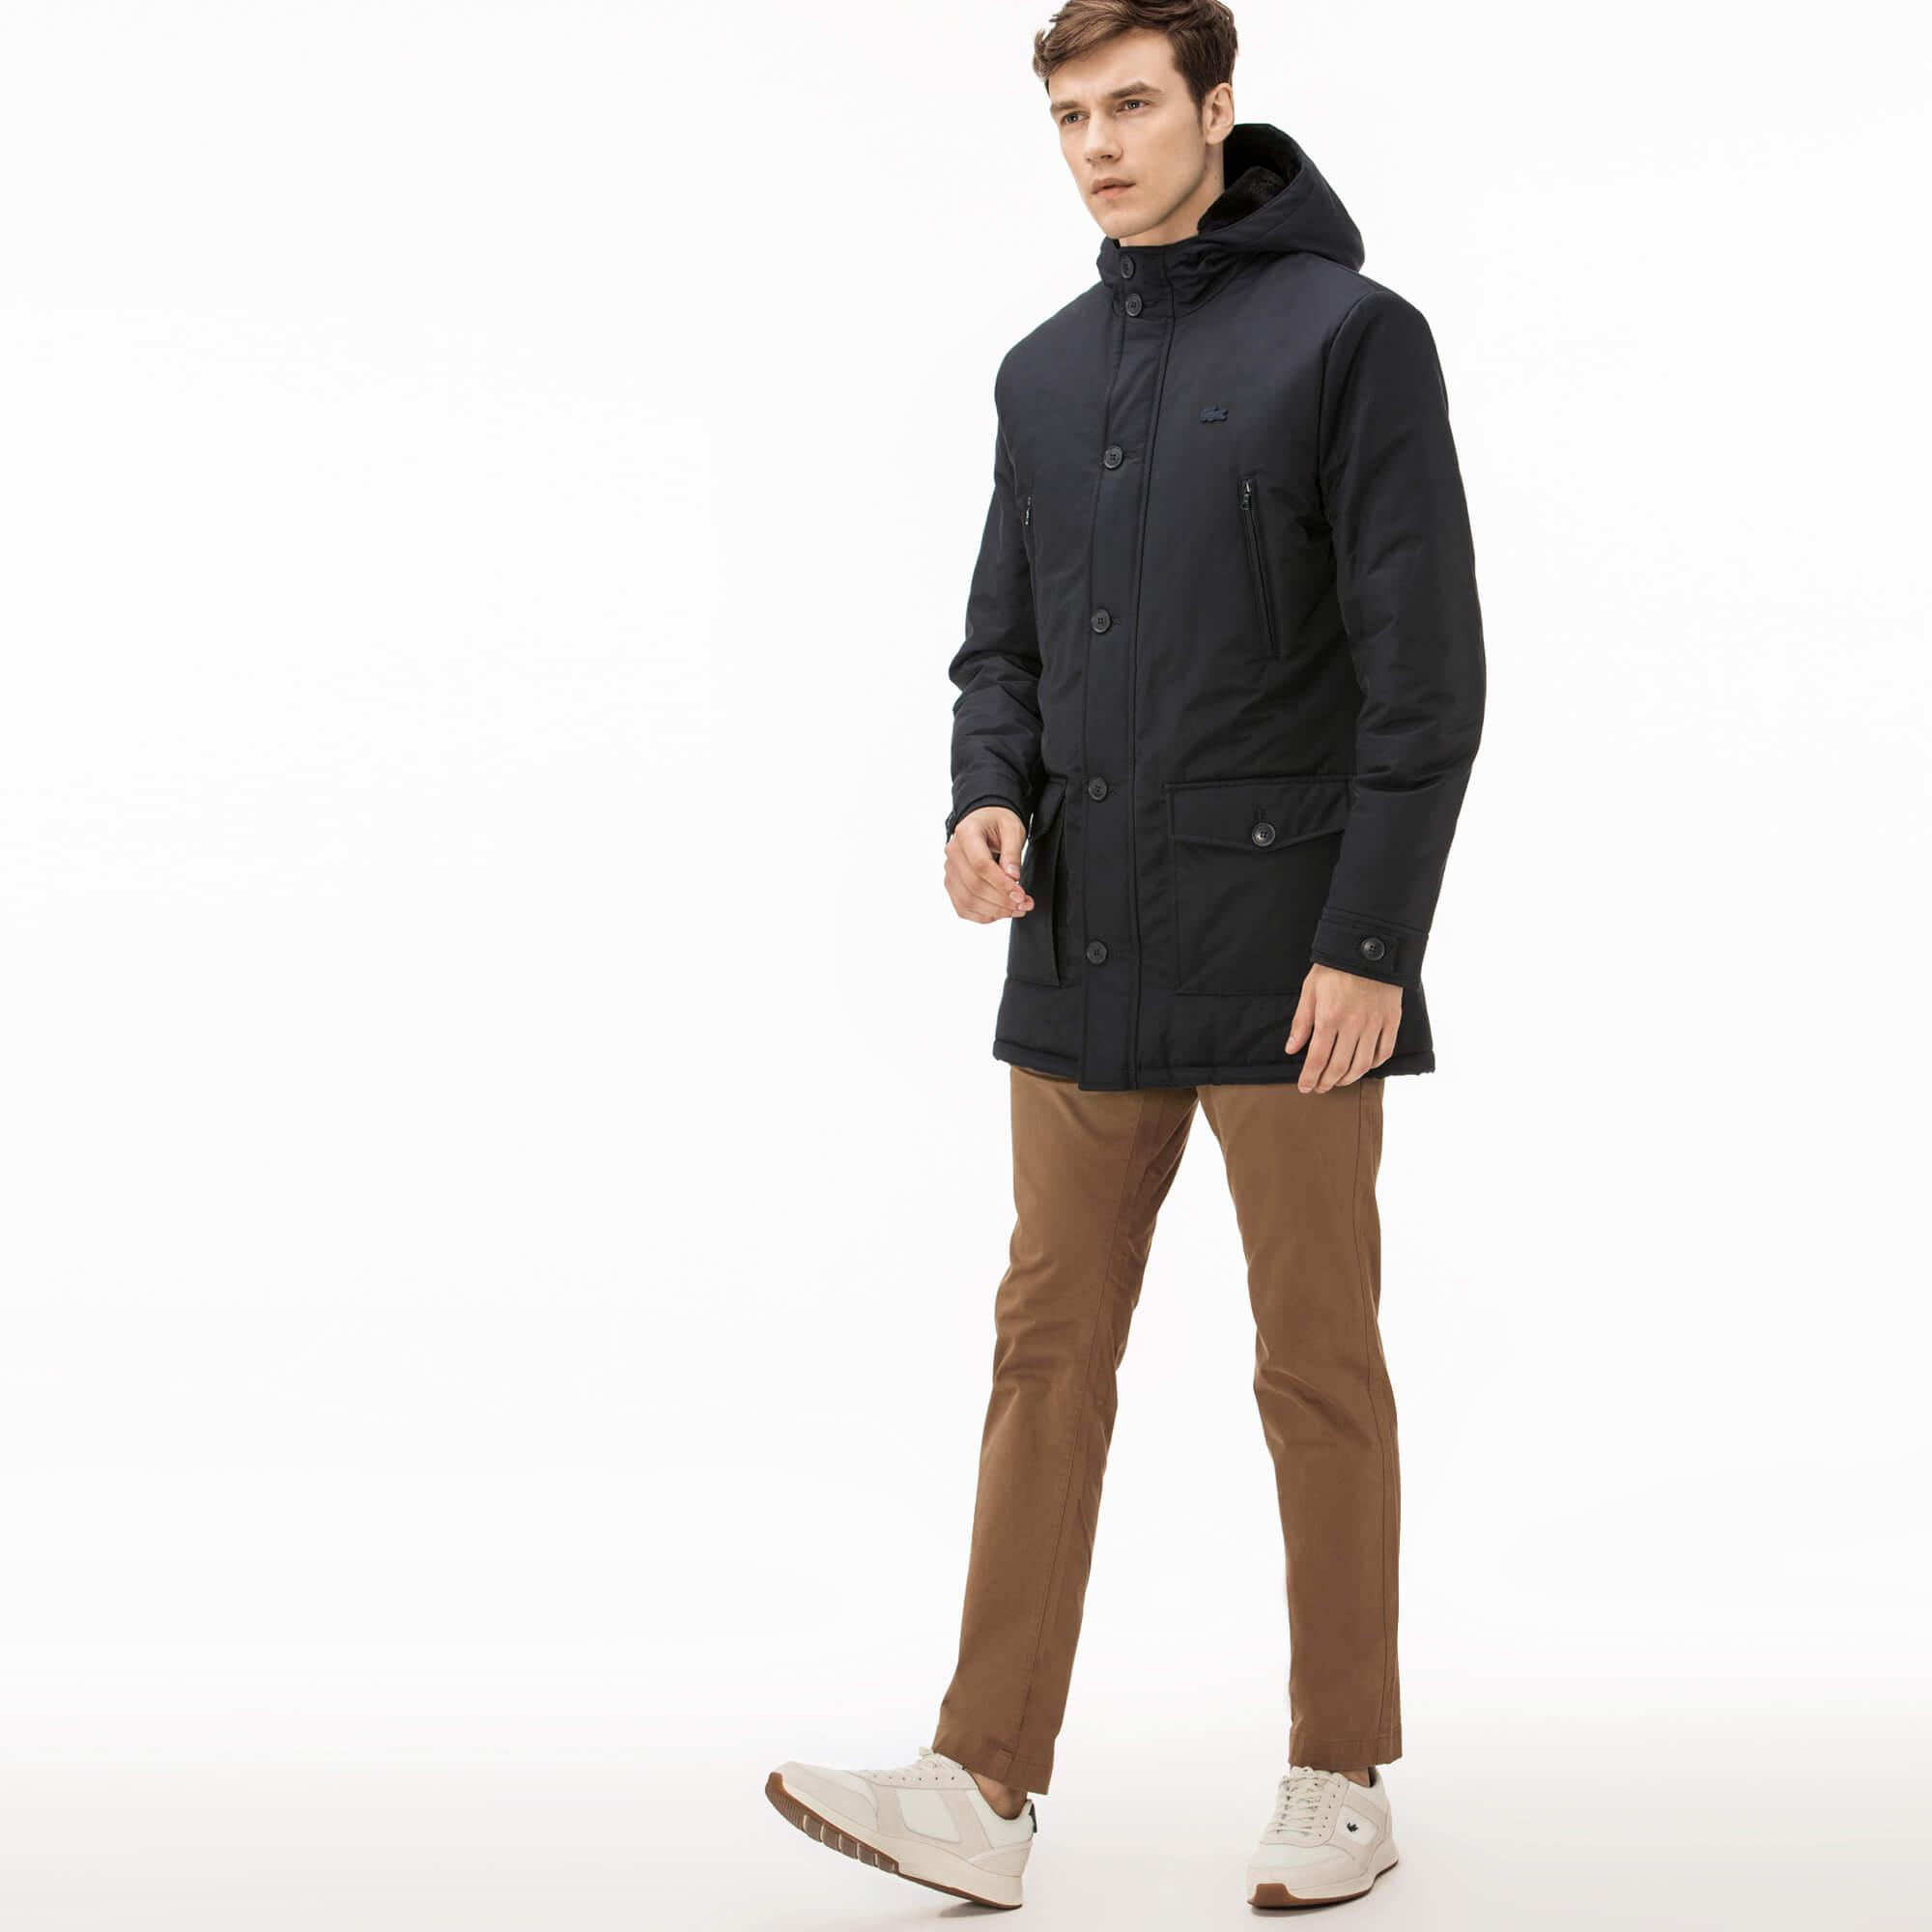 Lacoste Men's Short Brushed Cotton Jacket With Pockets